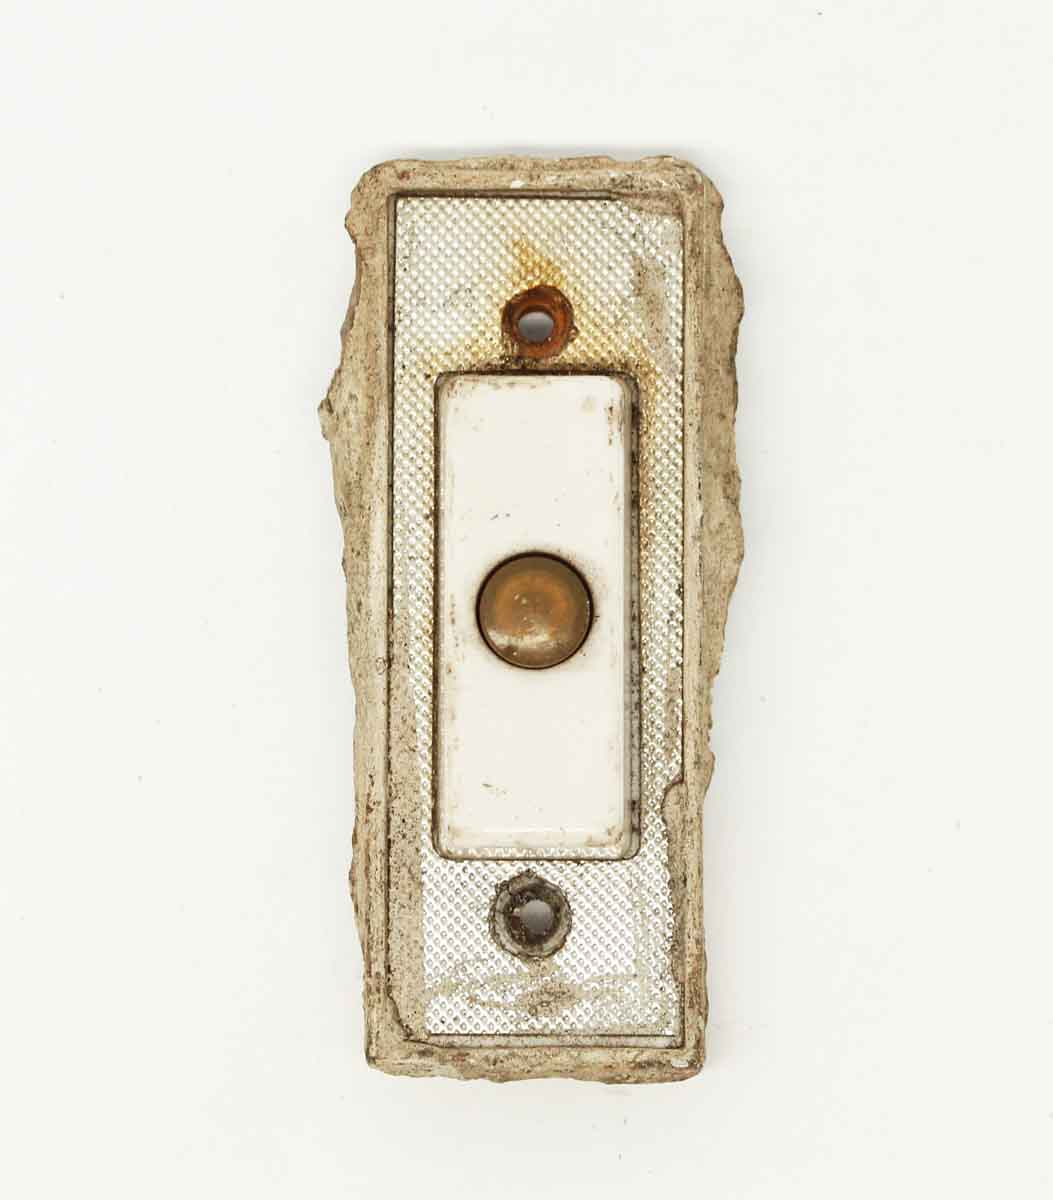 Old Vintage Doorbell With Button